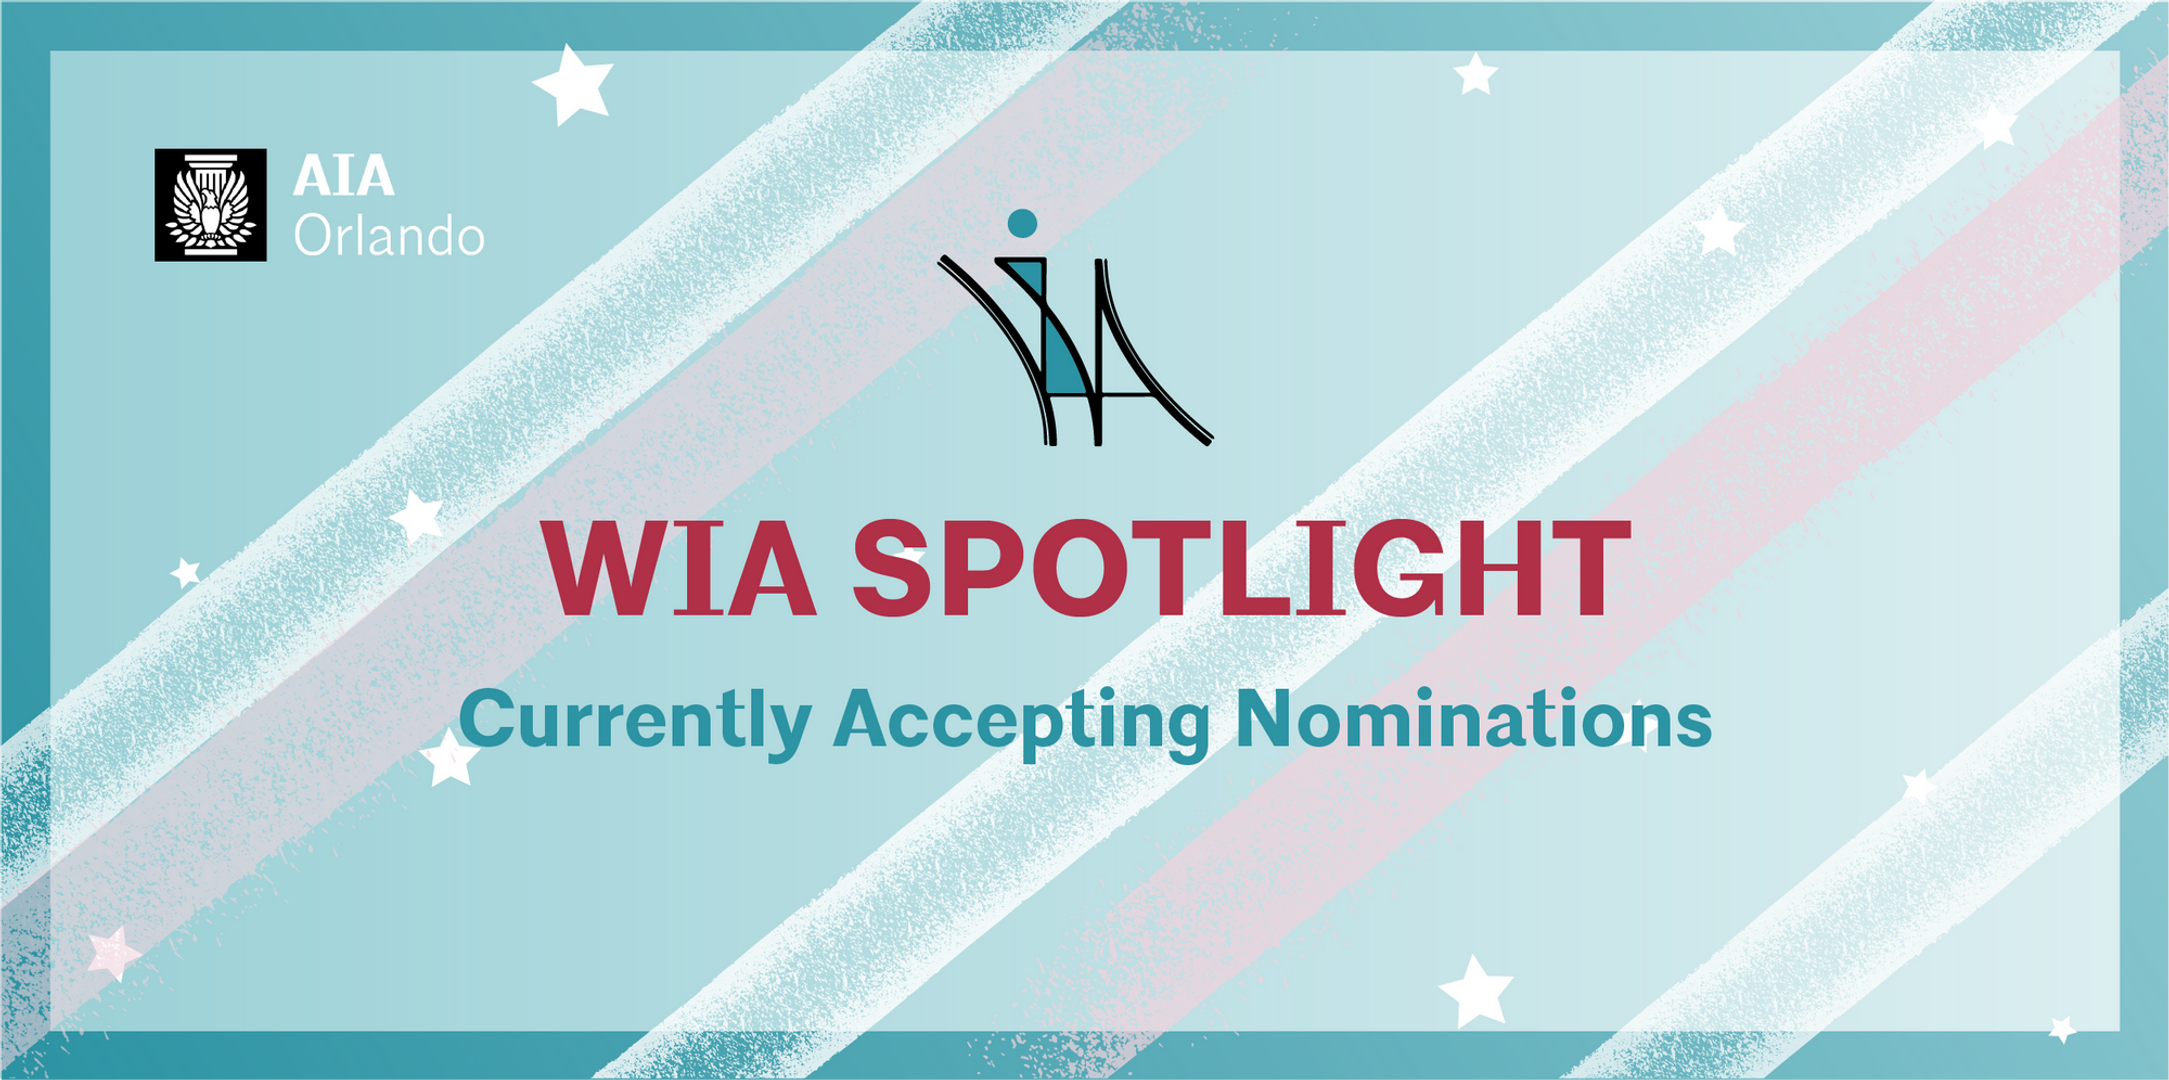 WIA spotlight banner FINAL.png